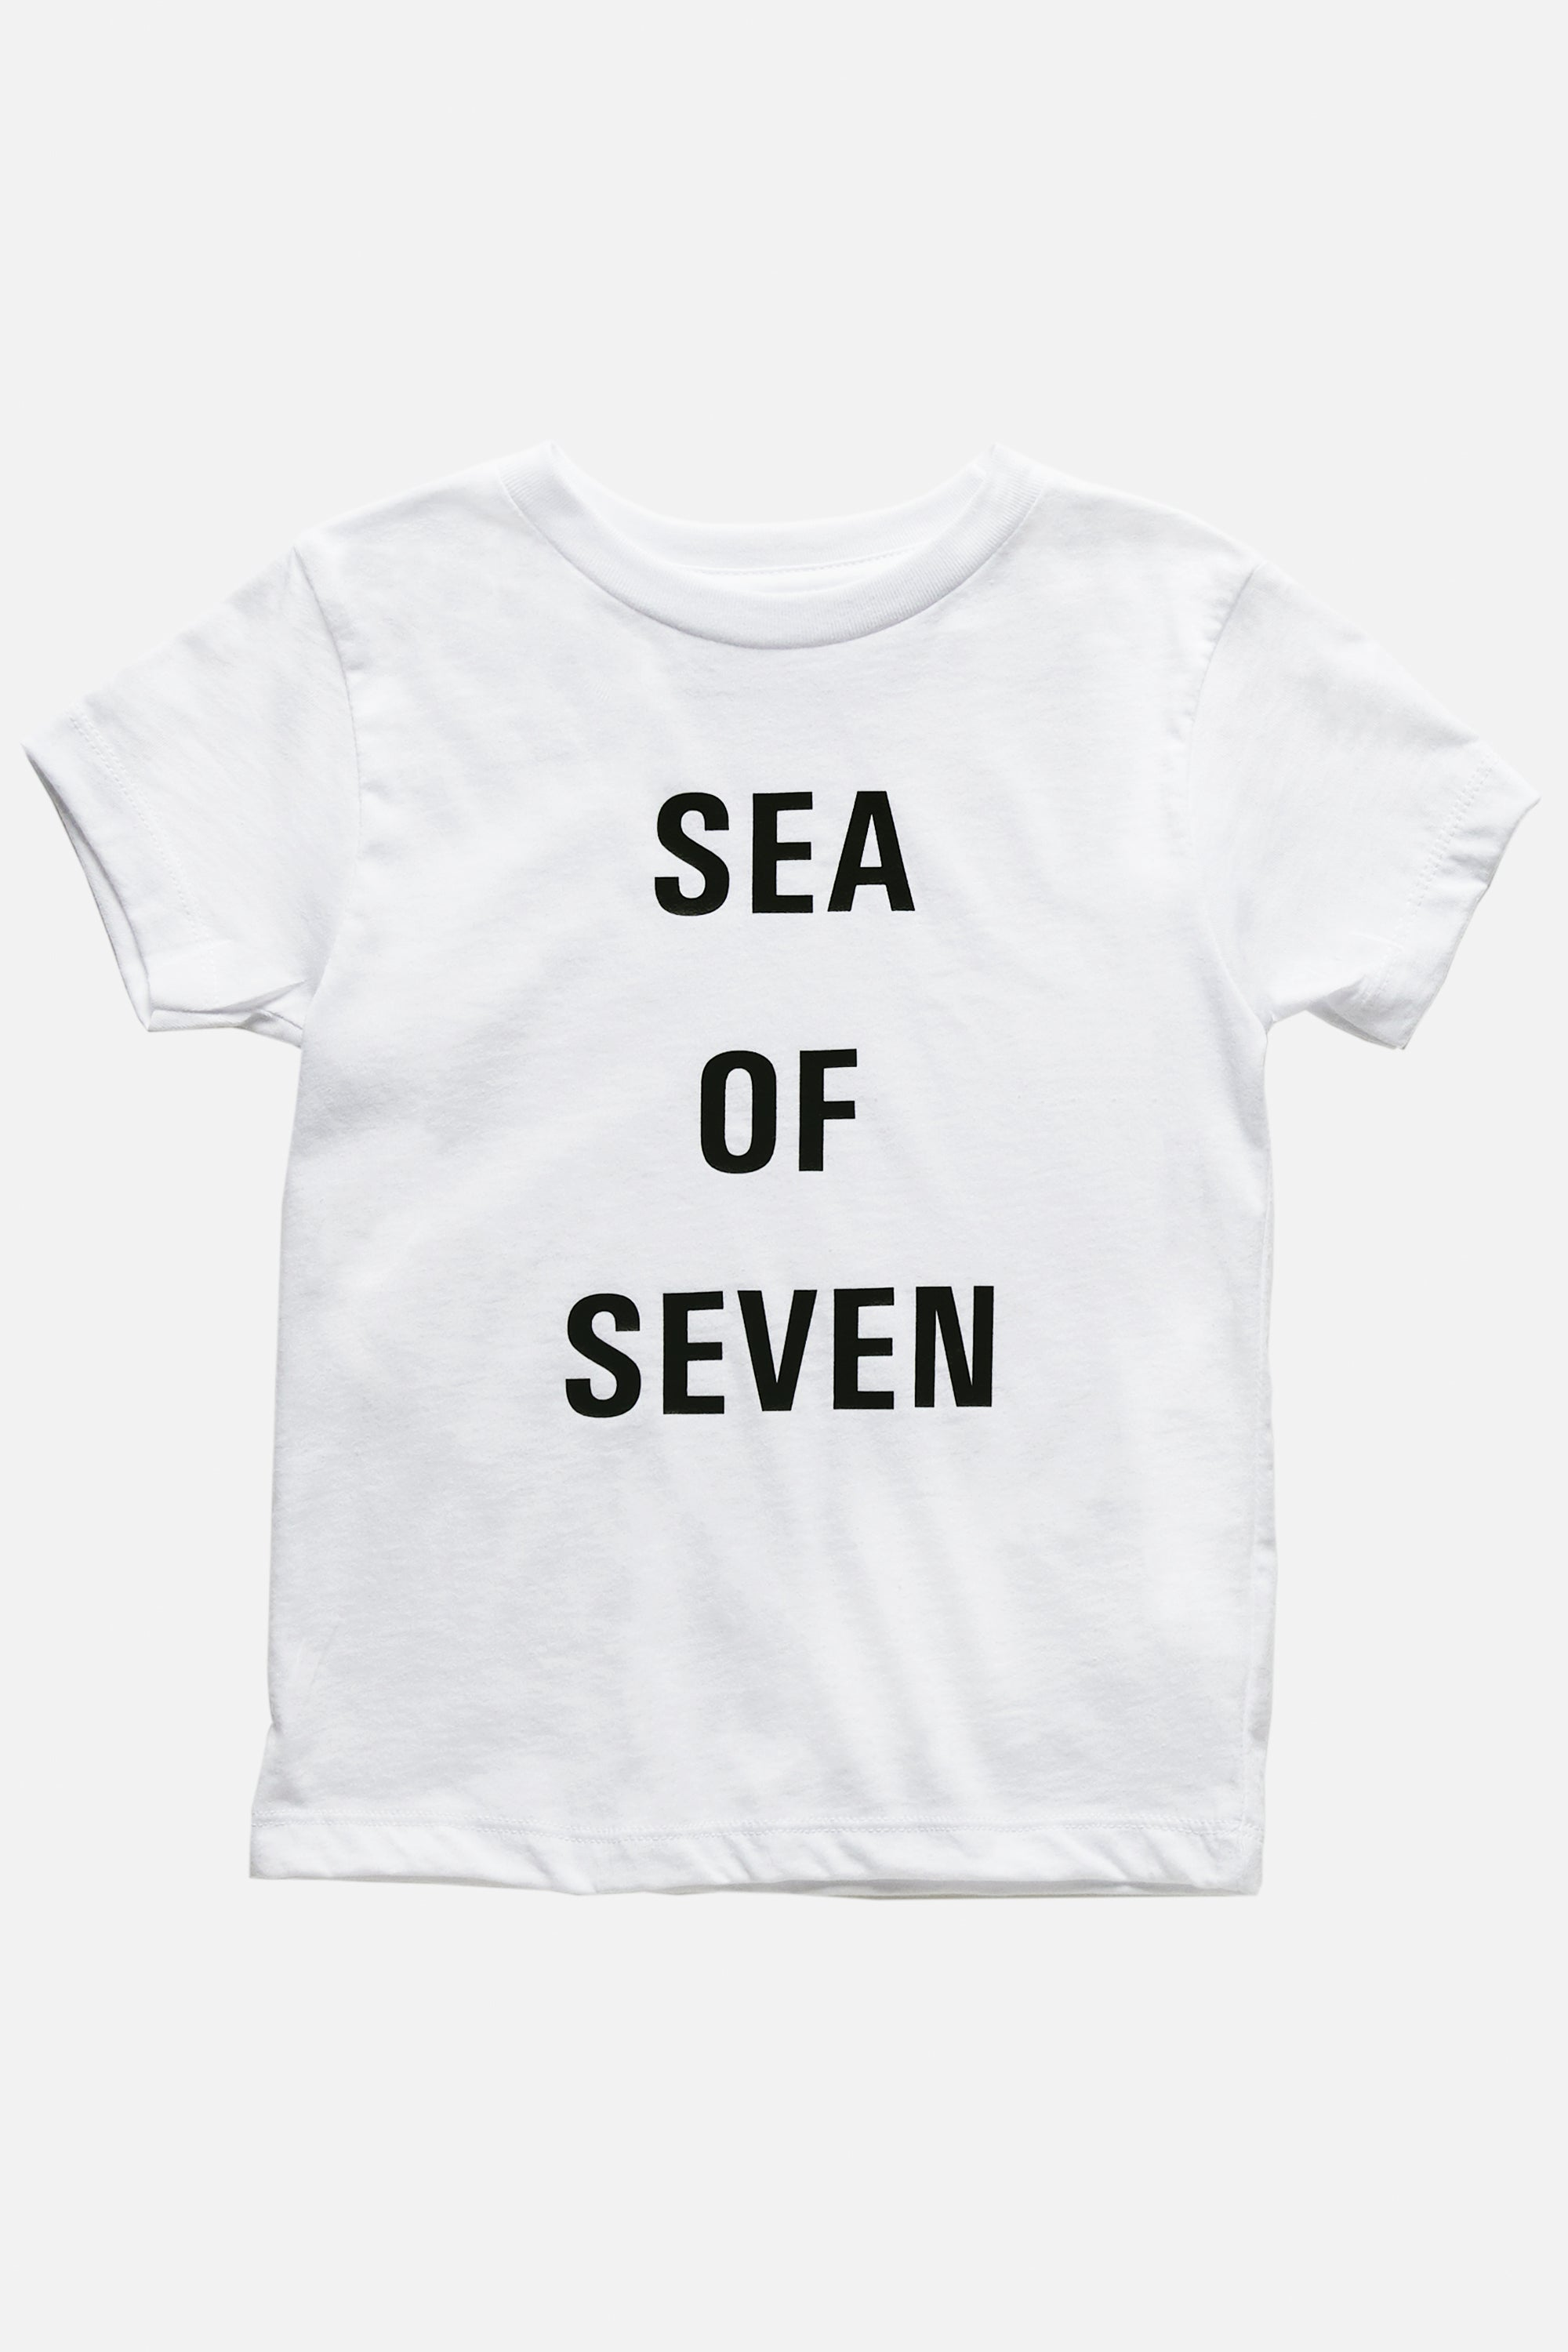 Next Hero toddler white t-shirt by Sea Of Seven from San Diego California.